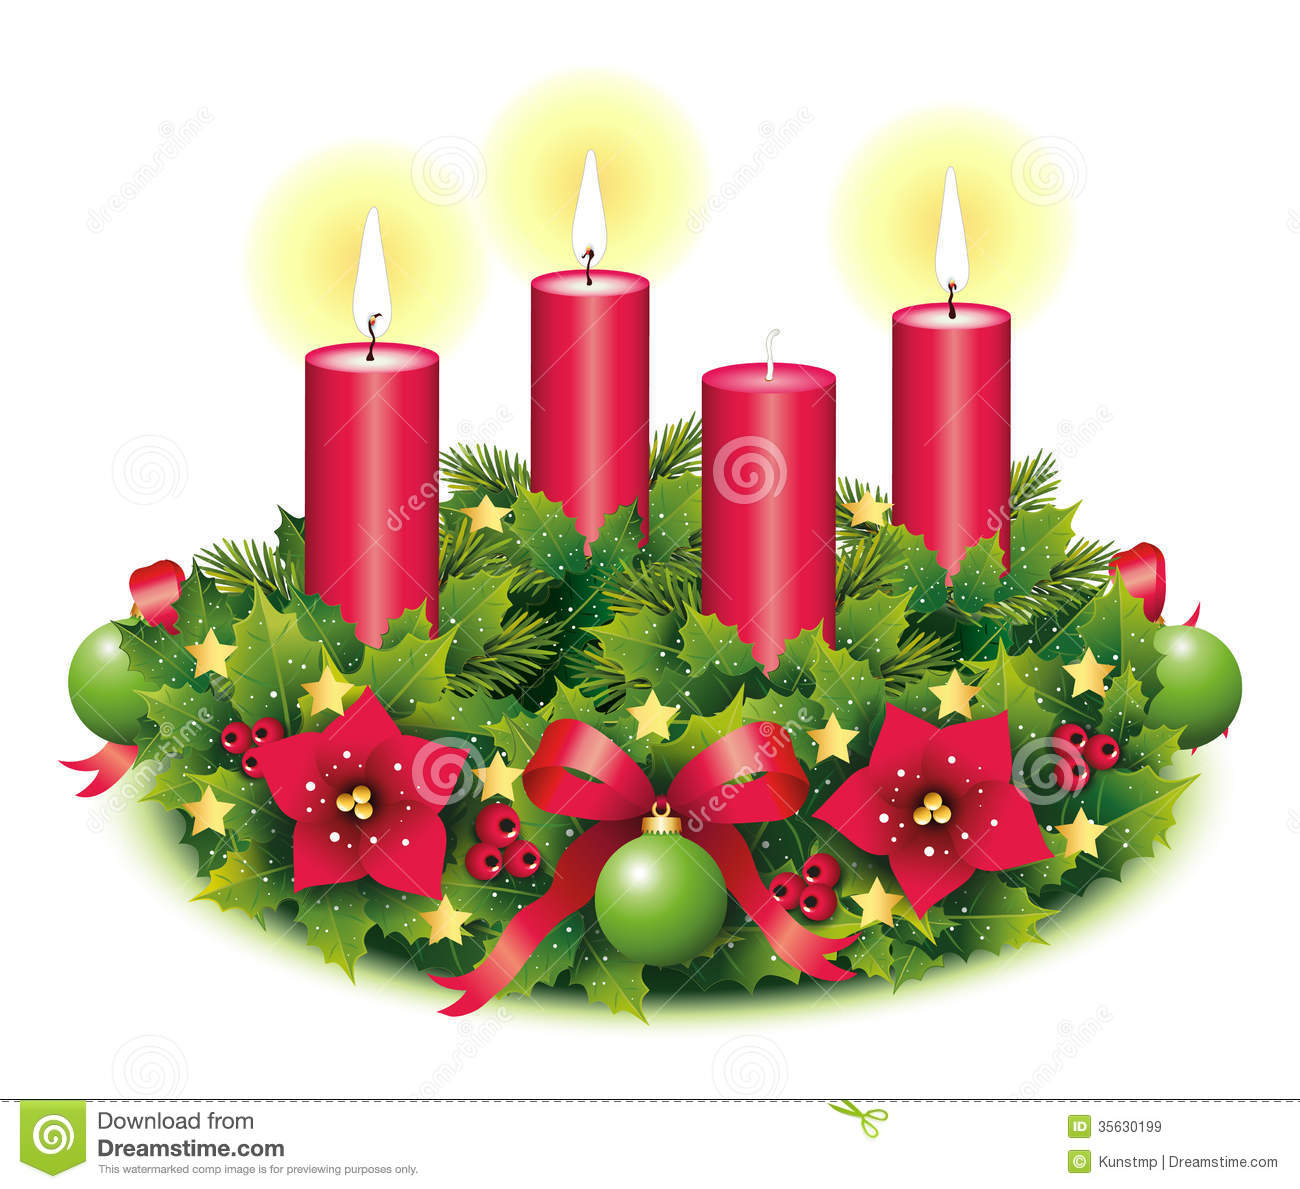 3rd Sunday Of Advent Clipart.